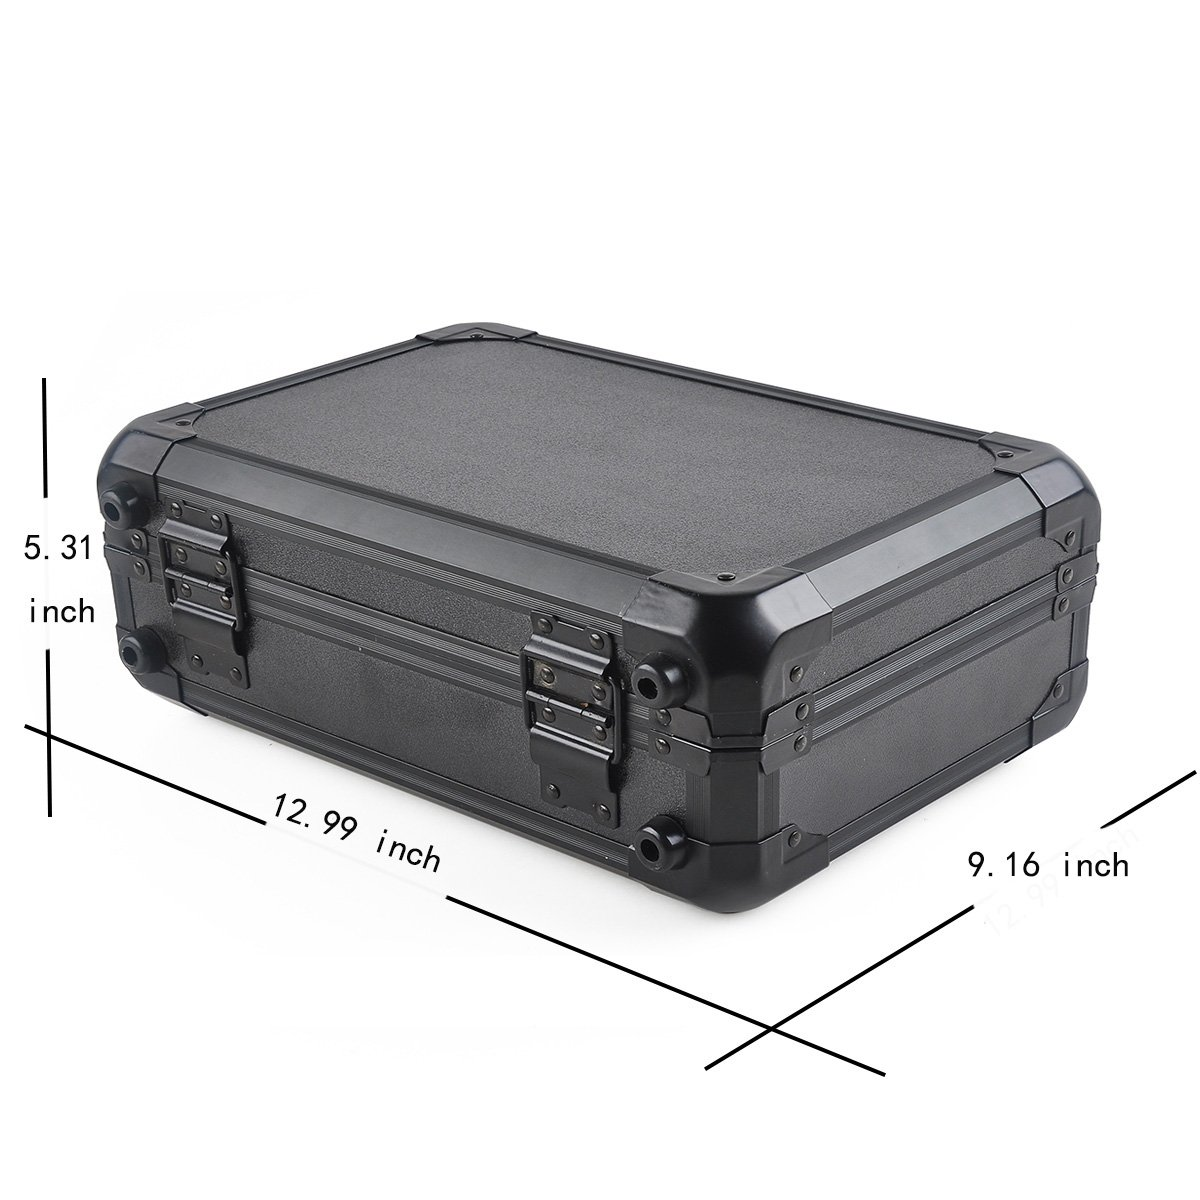 Hobby-Ace DJI Spark Drone Carrying Case by Travel Storage Case Bag fit for Spark Accessories Remote Controller and 3 Batteries,Propellers,Battery Charger and other accessories by Snotra Shop (Image #3)